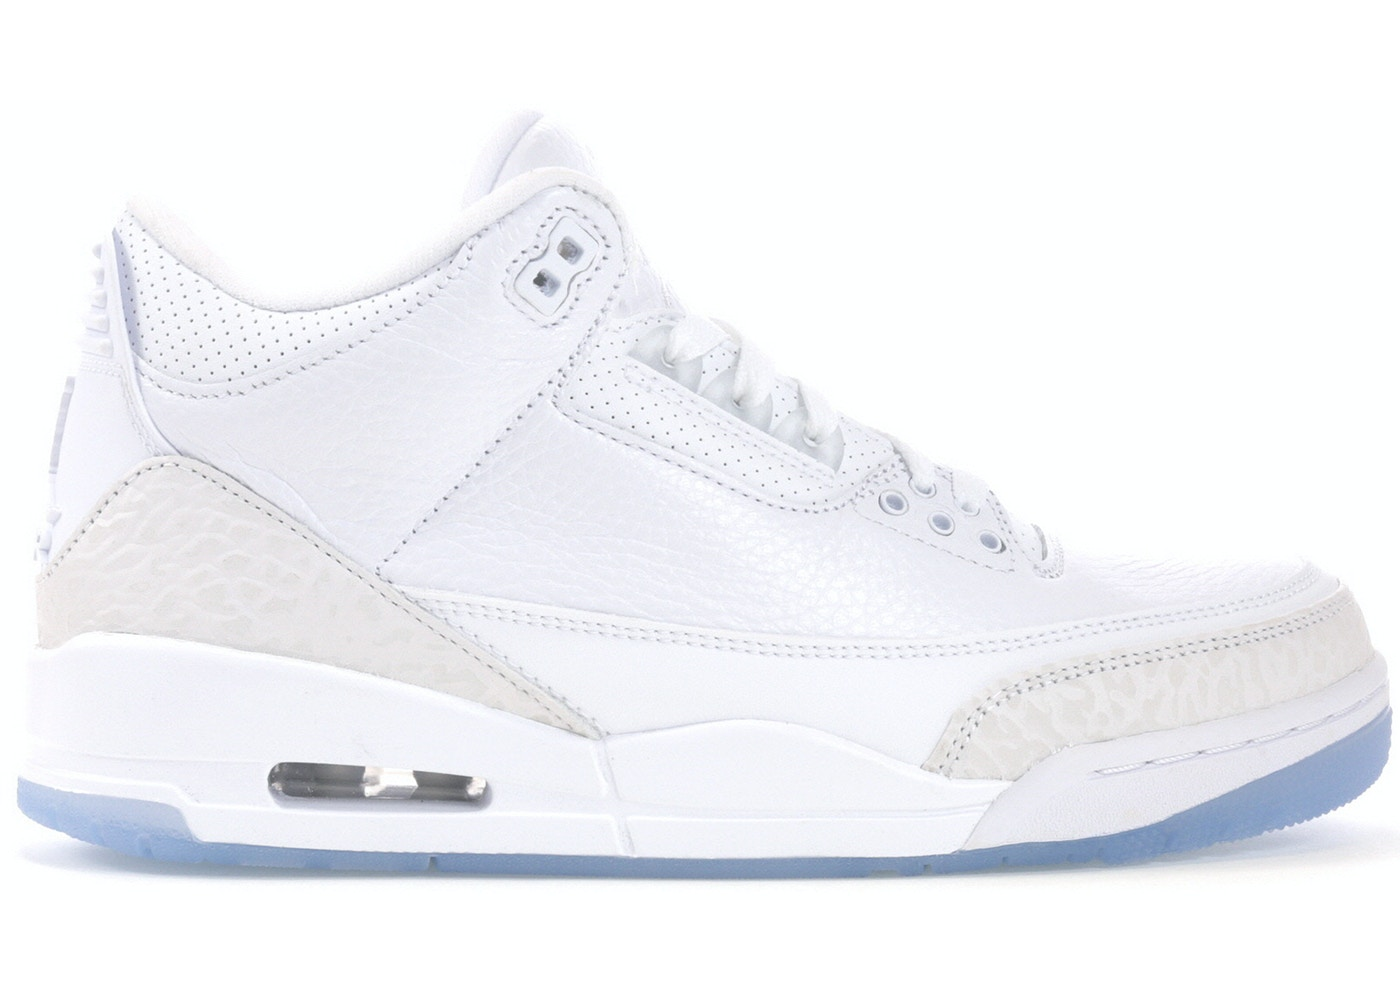 182311b95db5 Jordan 3 Retro Pure White (2018) - 136064-111